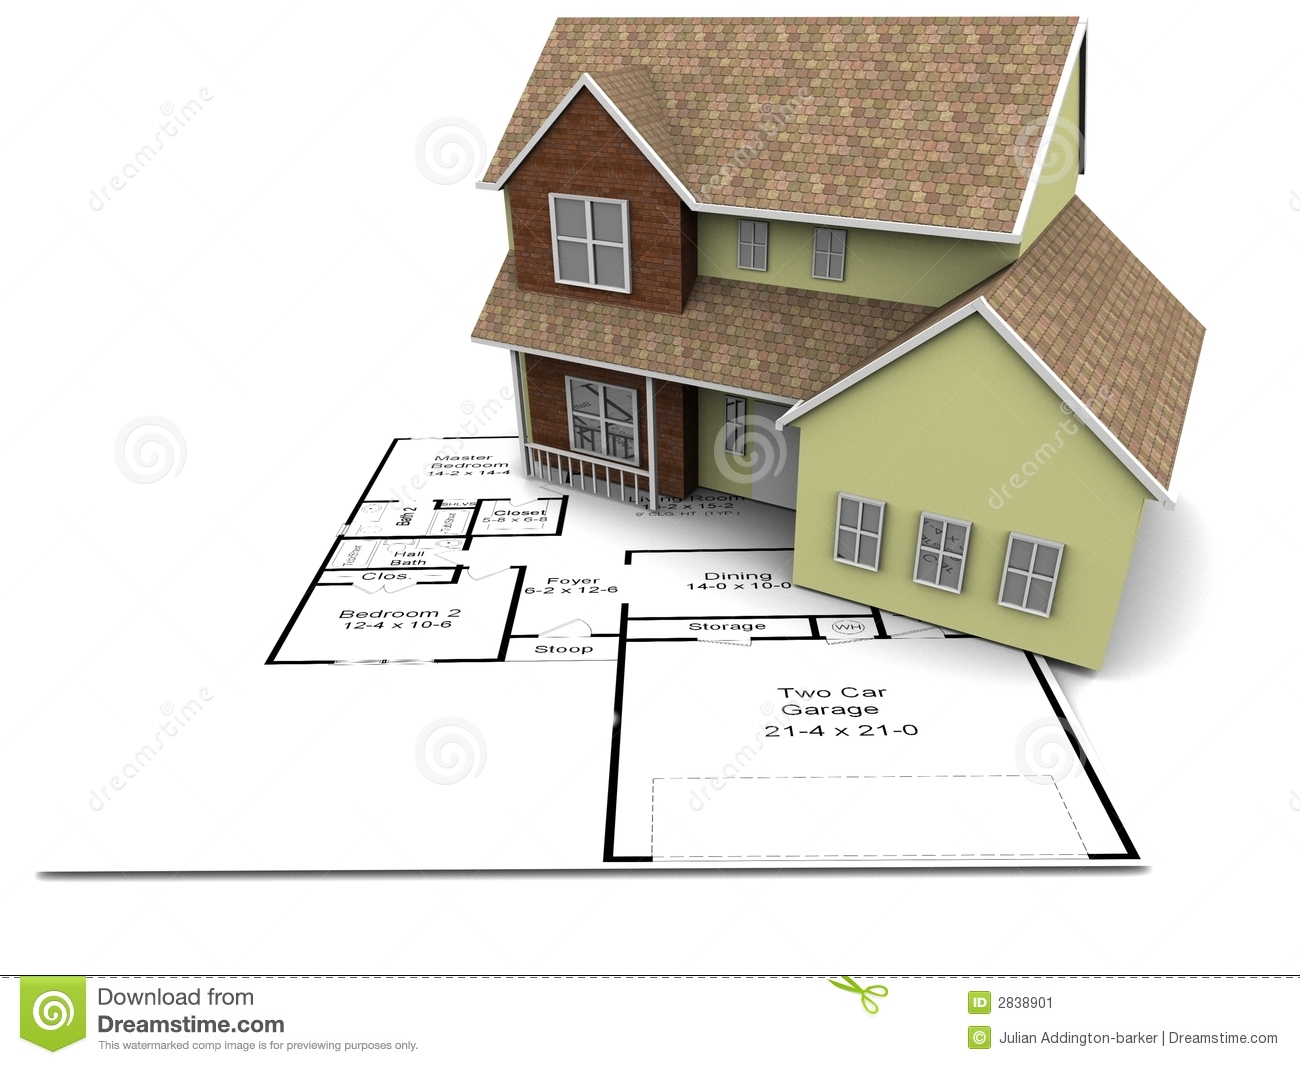 New house plans stock illustration illustration of house for New house blueprints